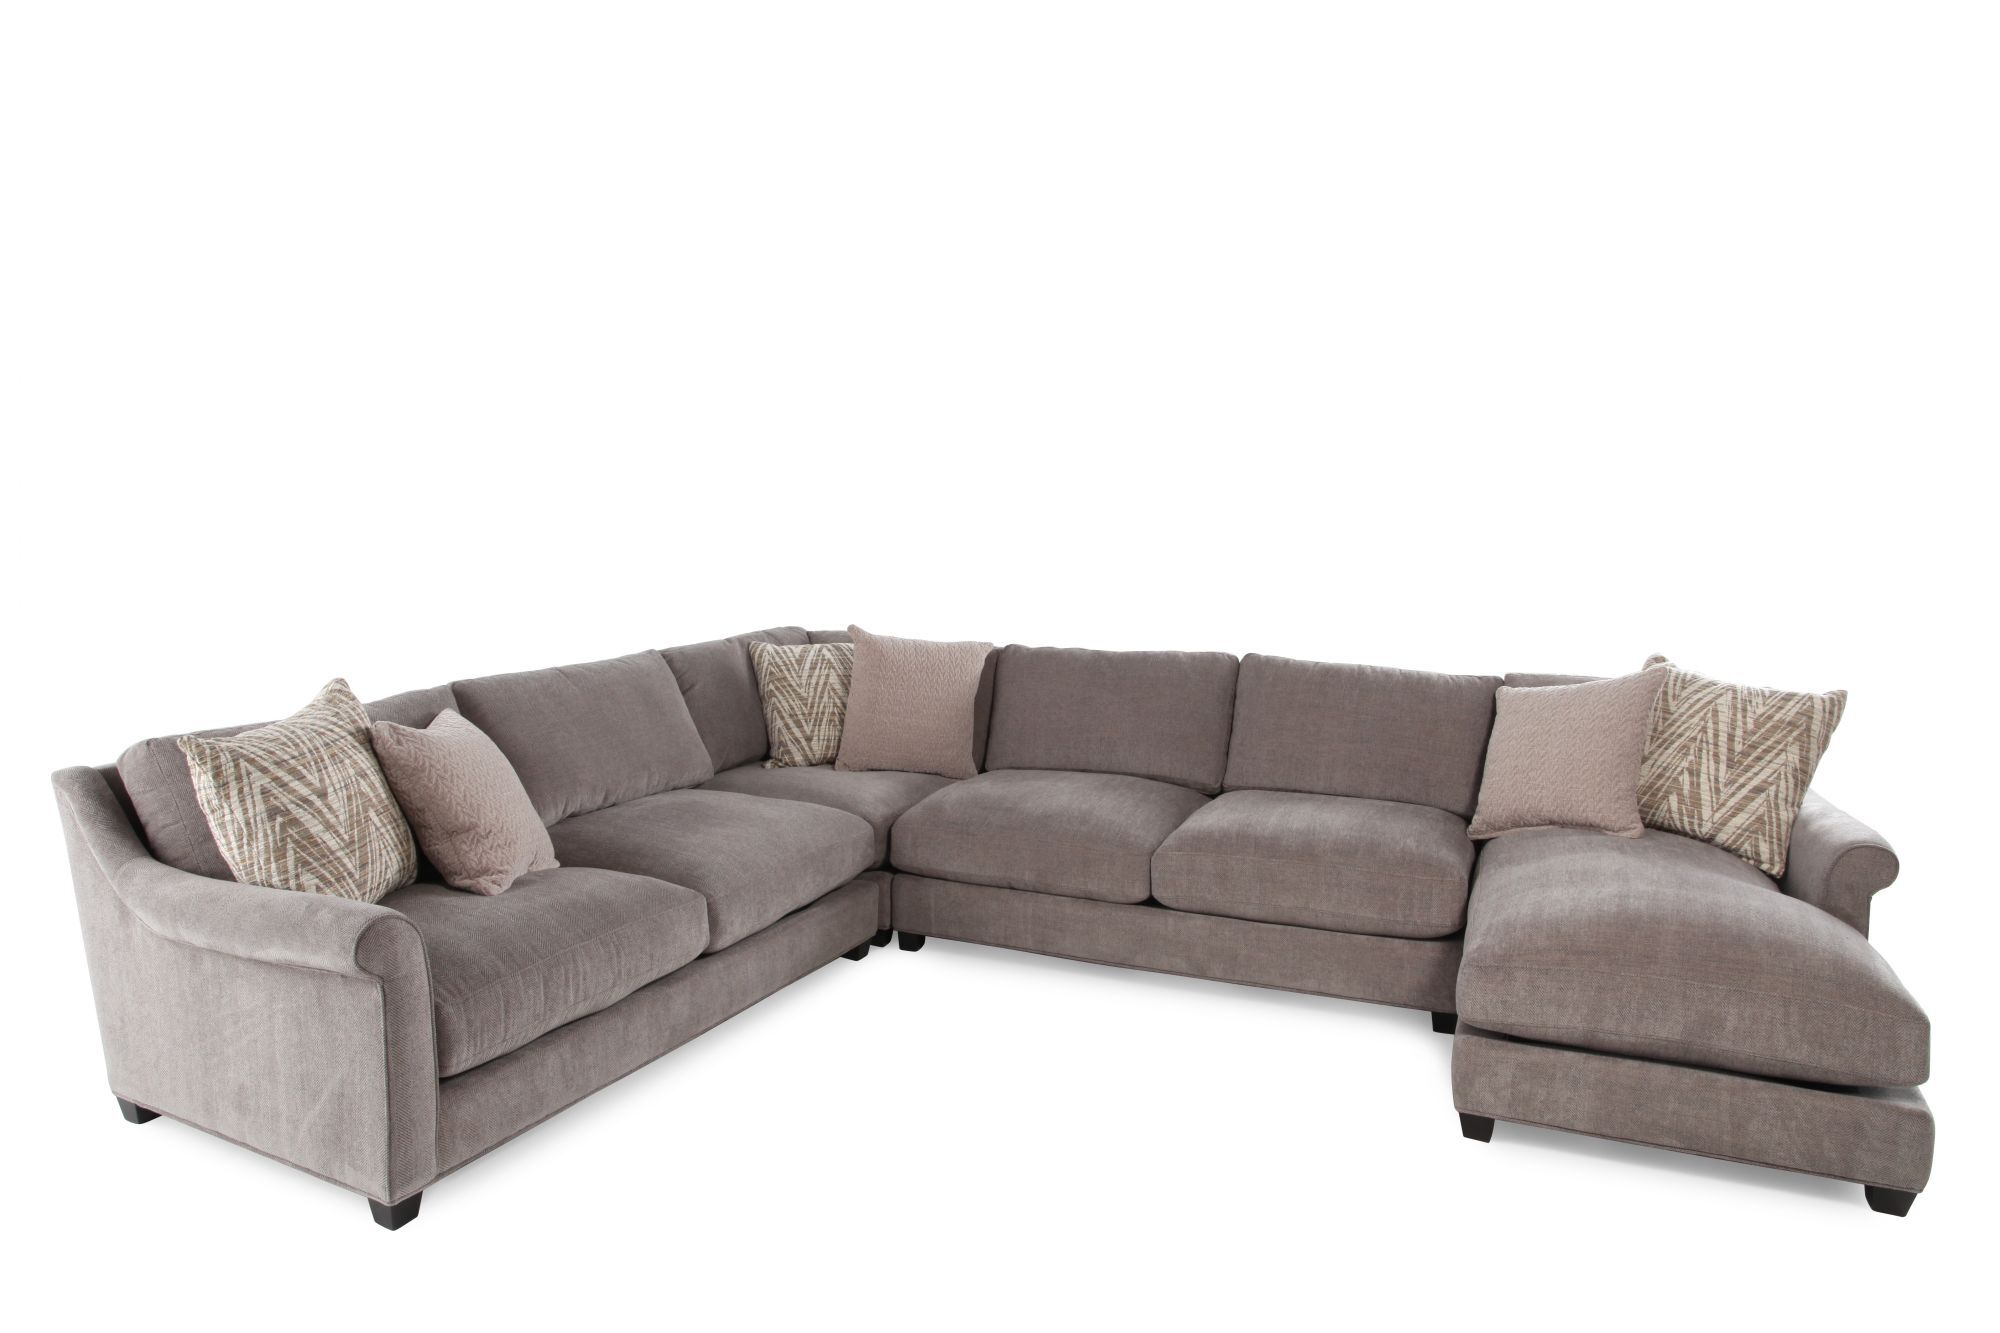 jonathan louis benjamin sectional sofa sofas for small rooms with design